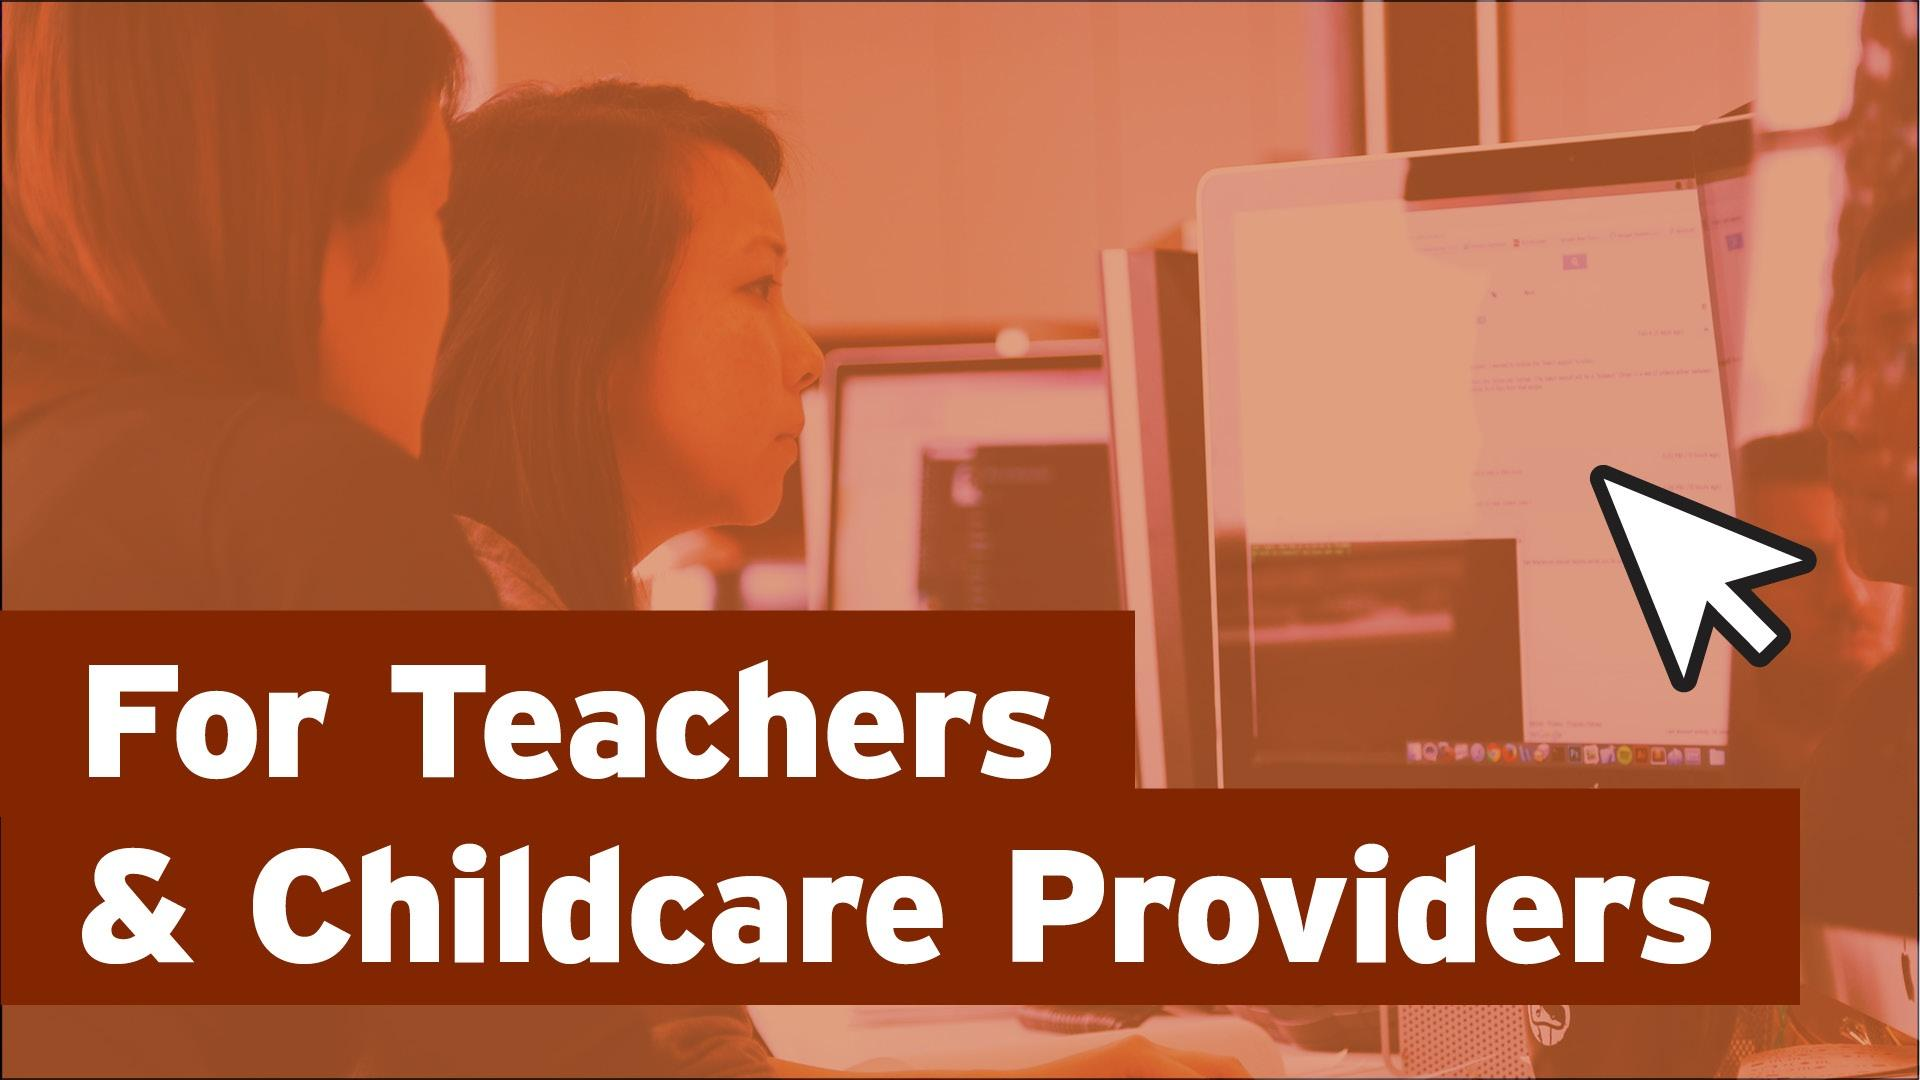 For Teachers & Childcare Providers